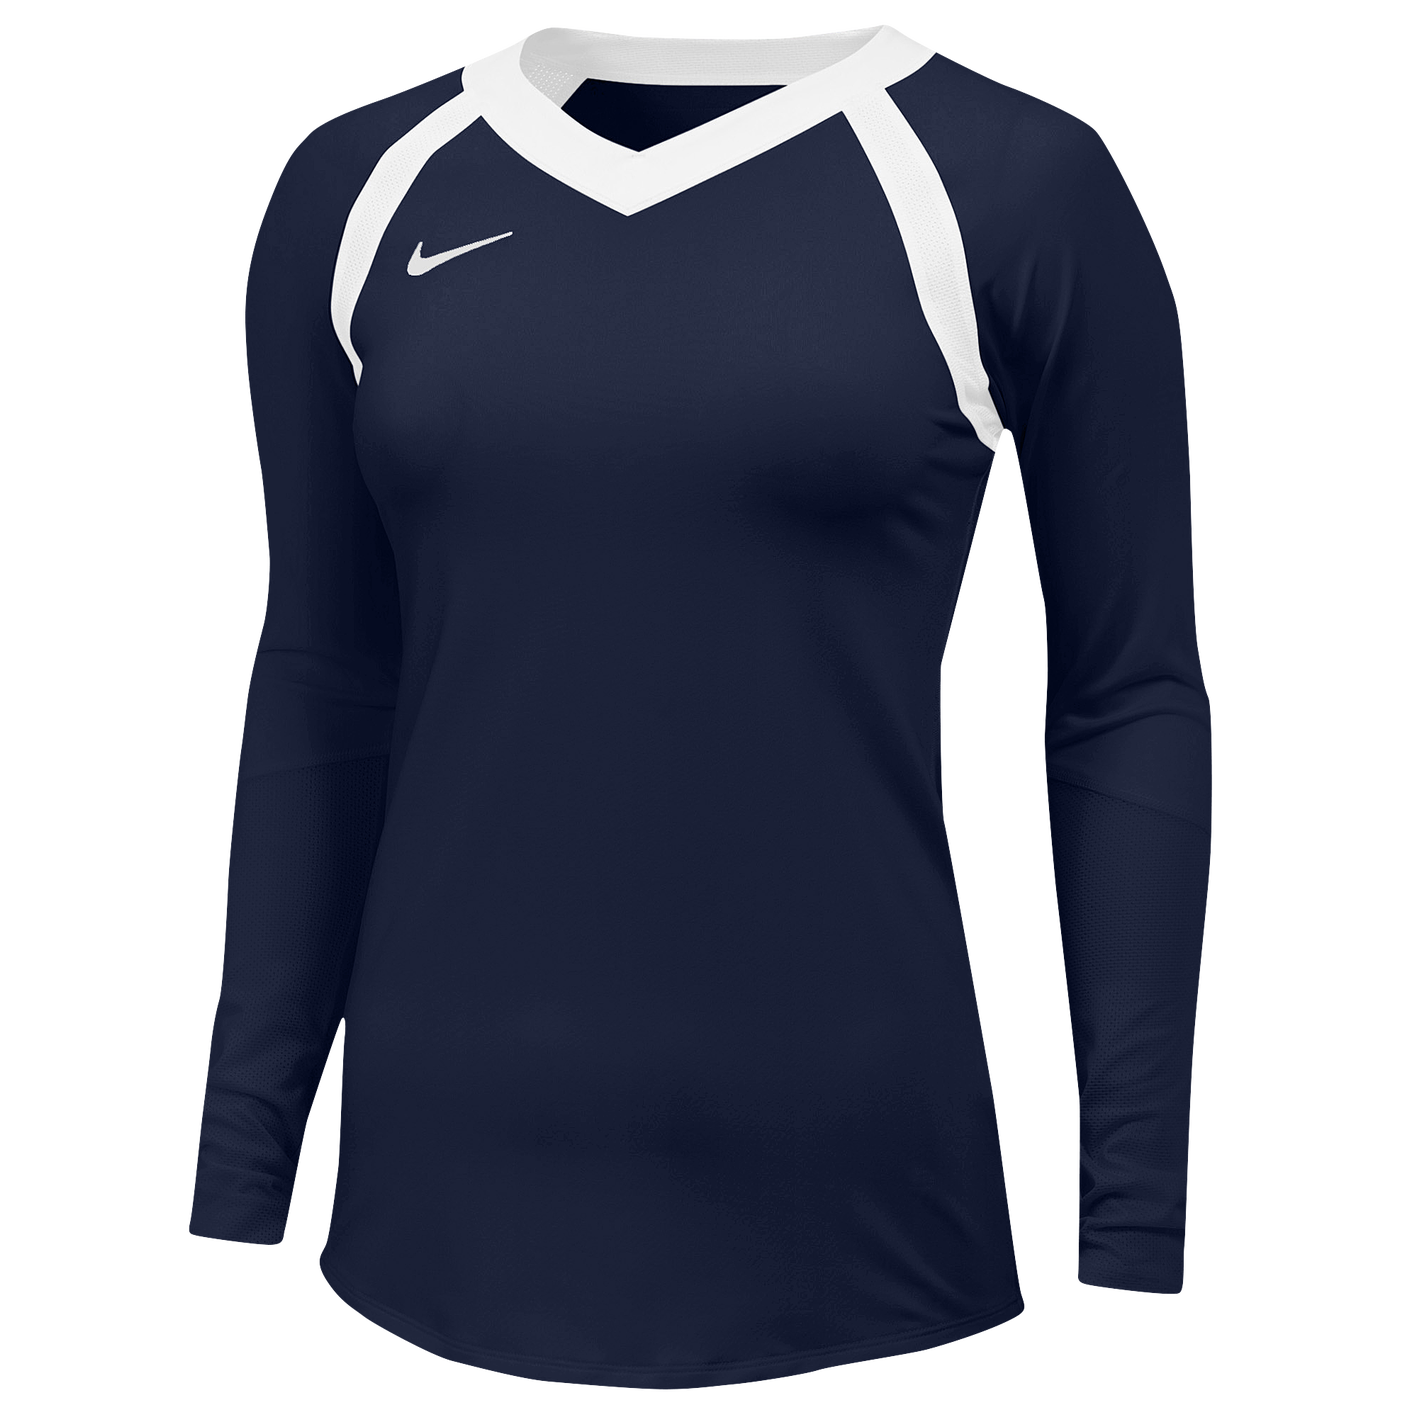 348d28f185b2 Nike Team Agility Jersey - Women s - Volleyball - Clothing - Team ...